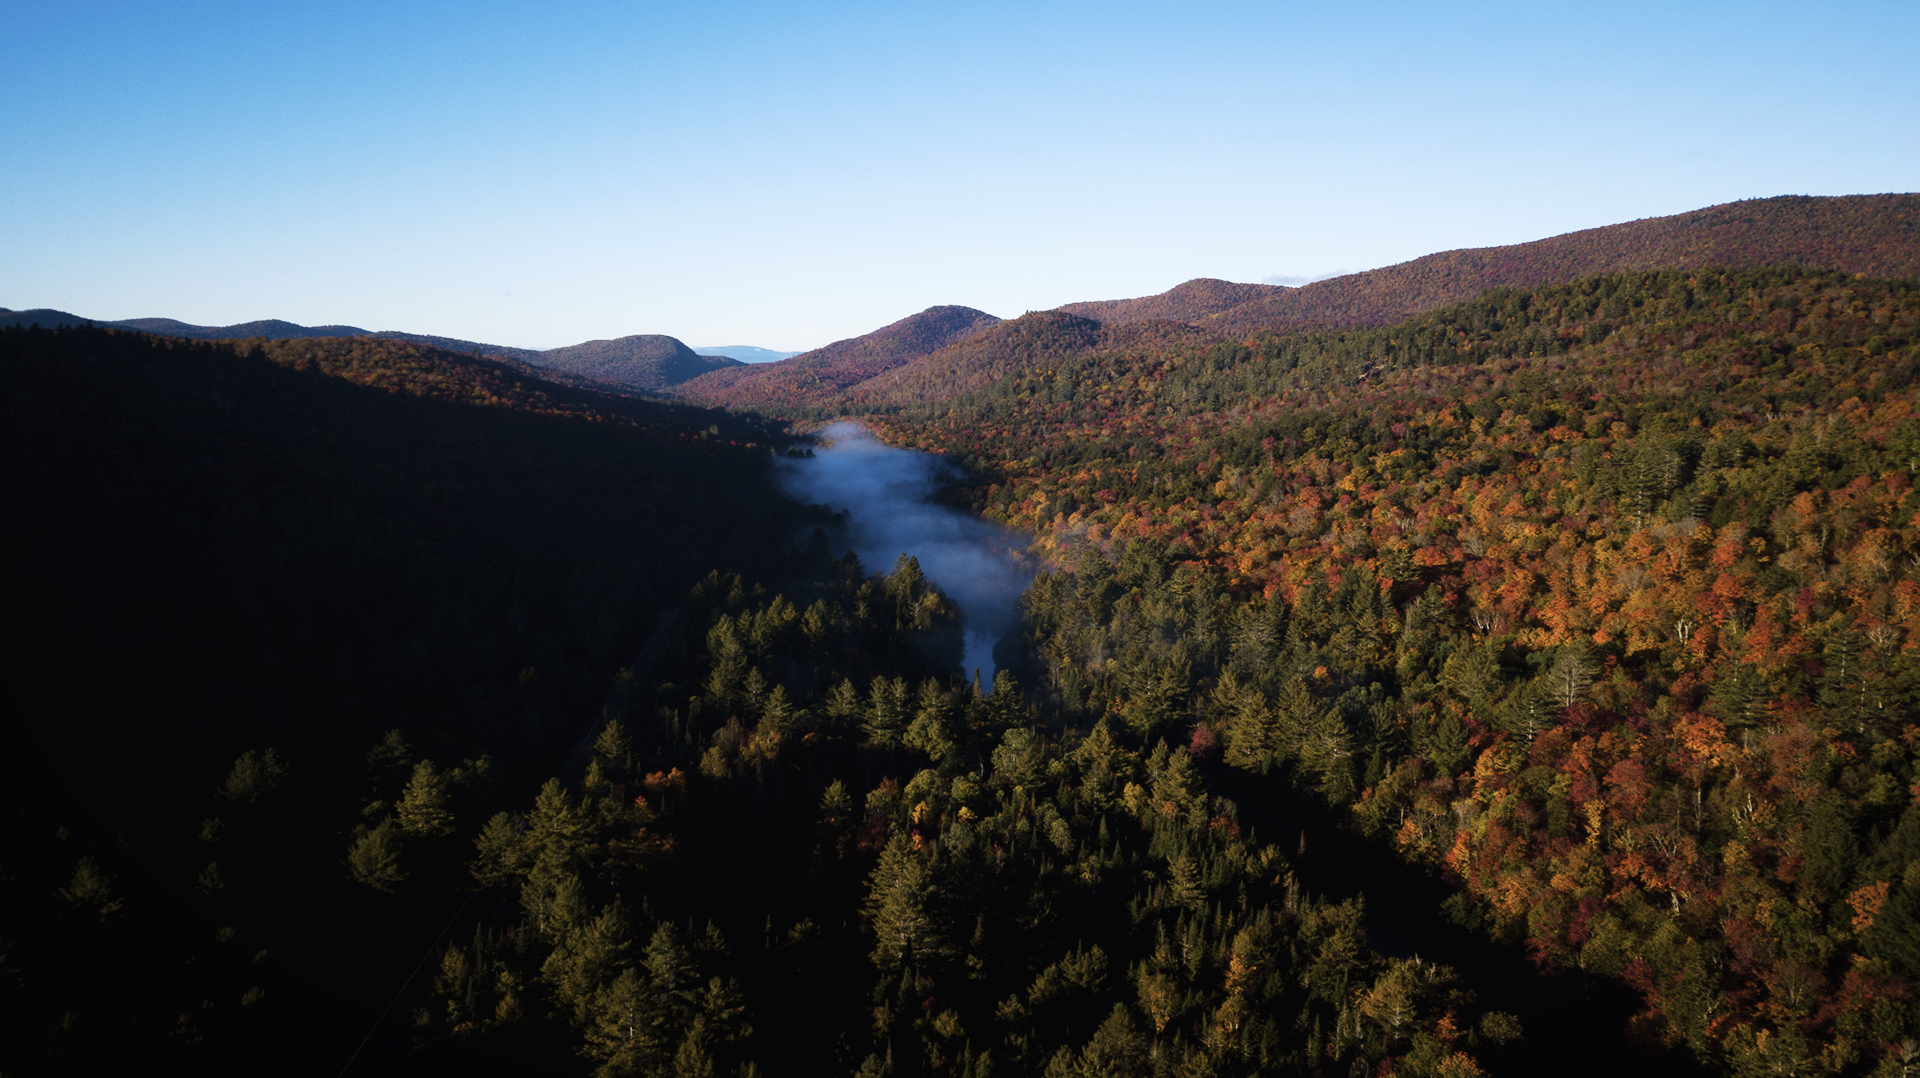 Adirondacks: Misty Morning